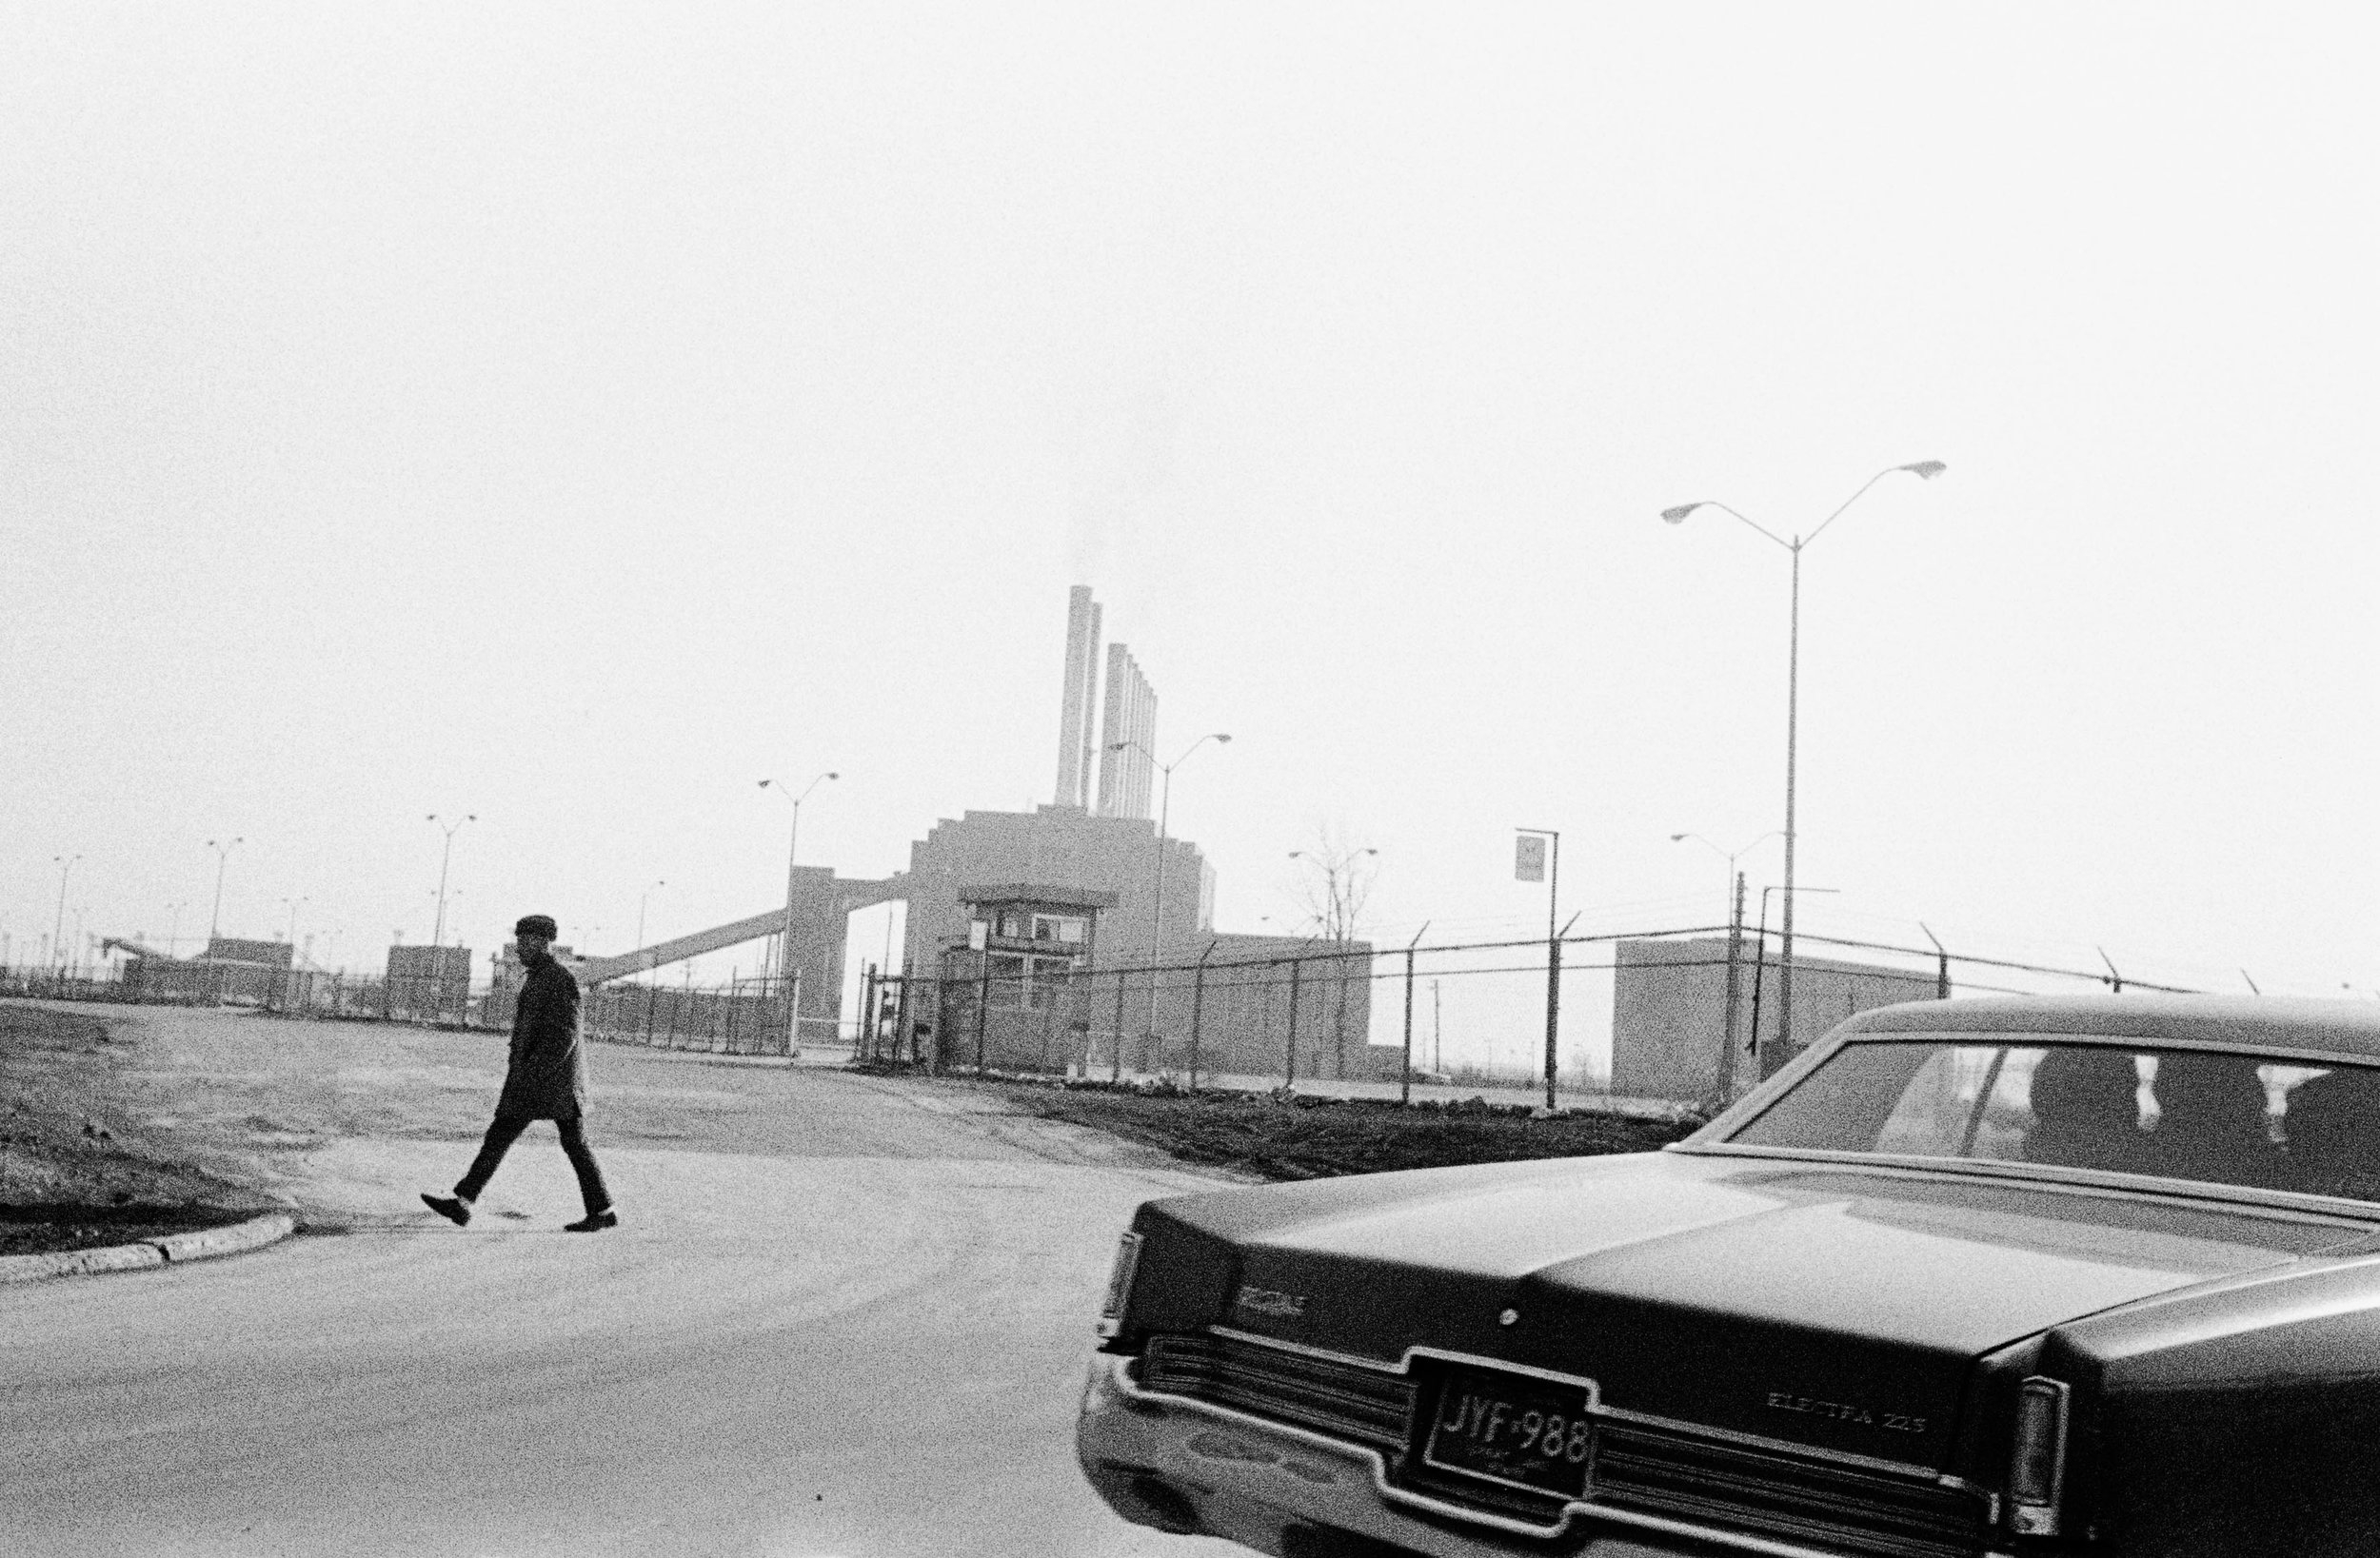 """Detroit, 1971"" by Jerry Berndt. Published by  Steidl ."